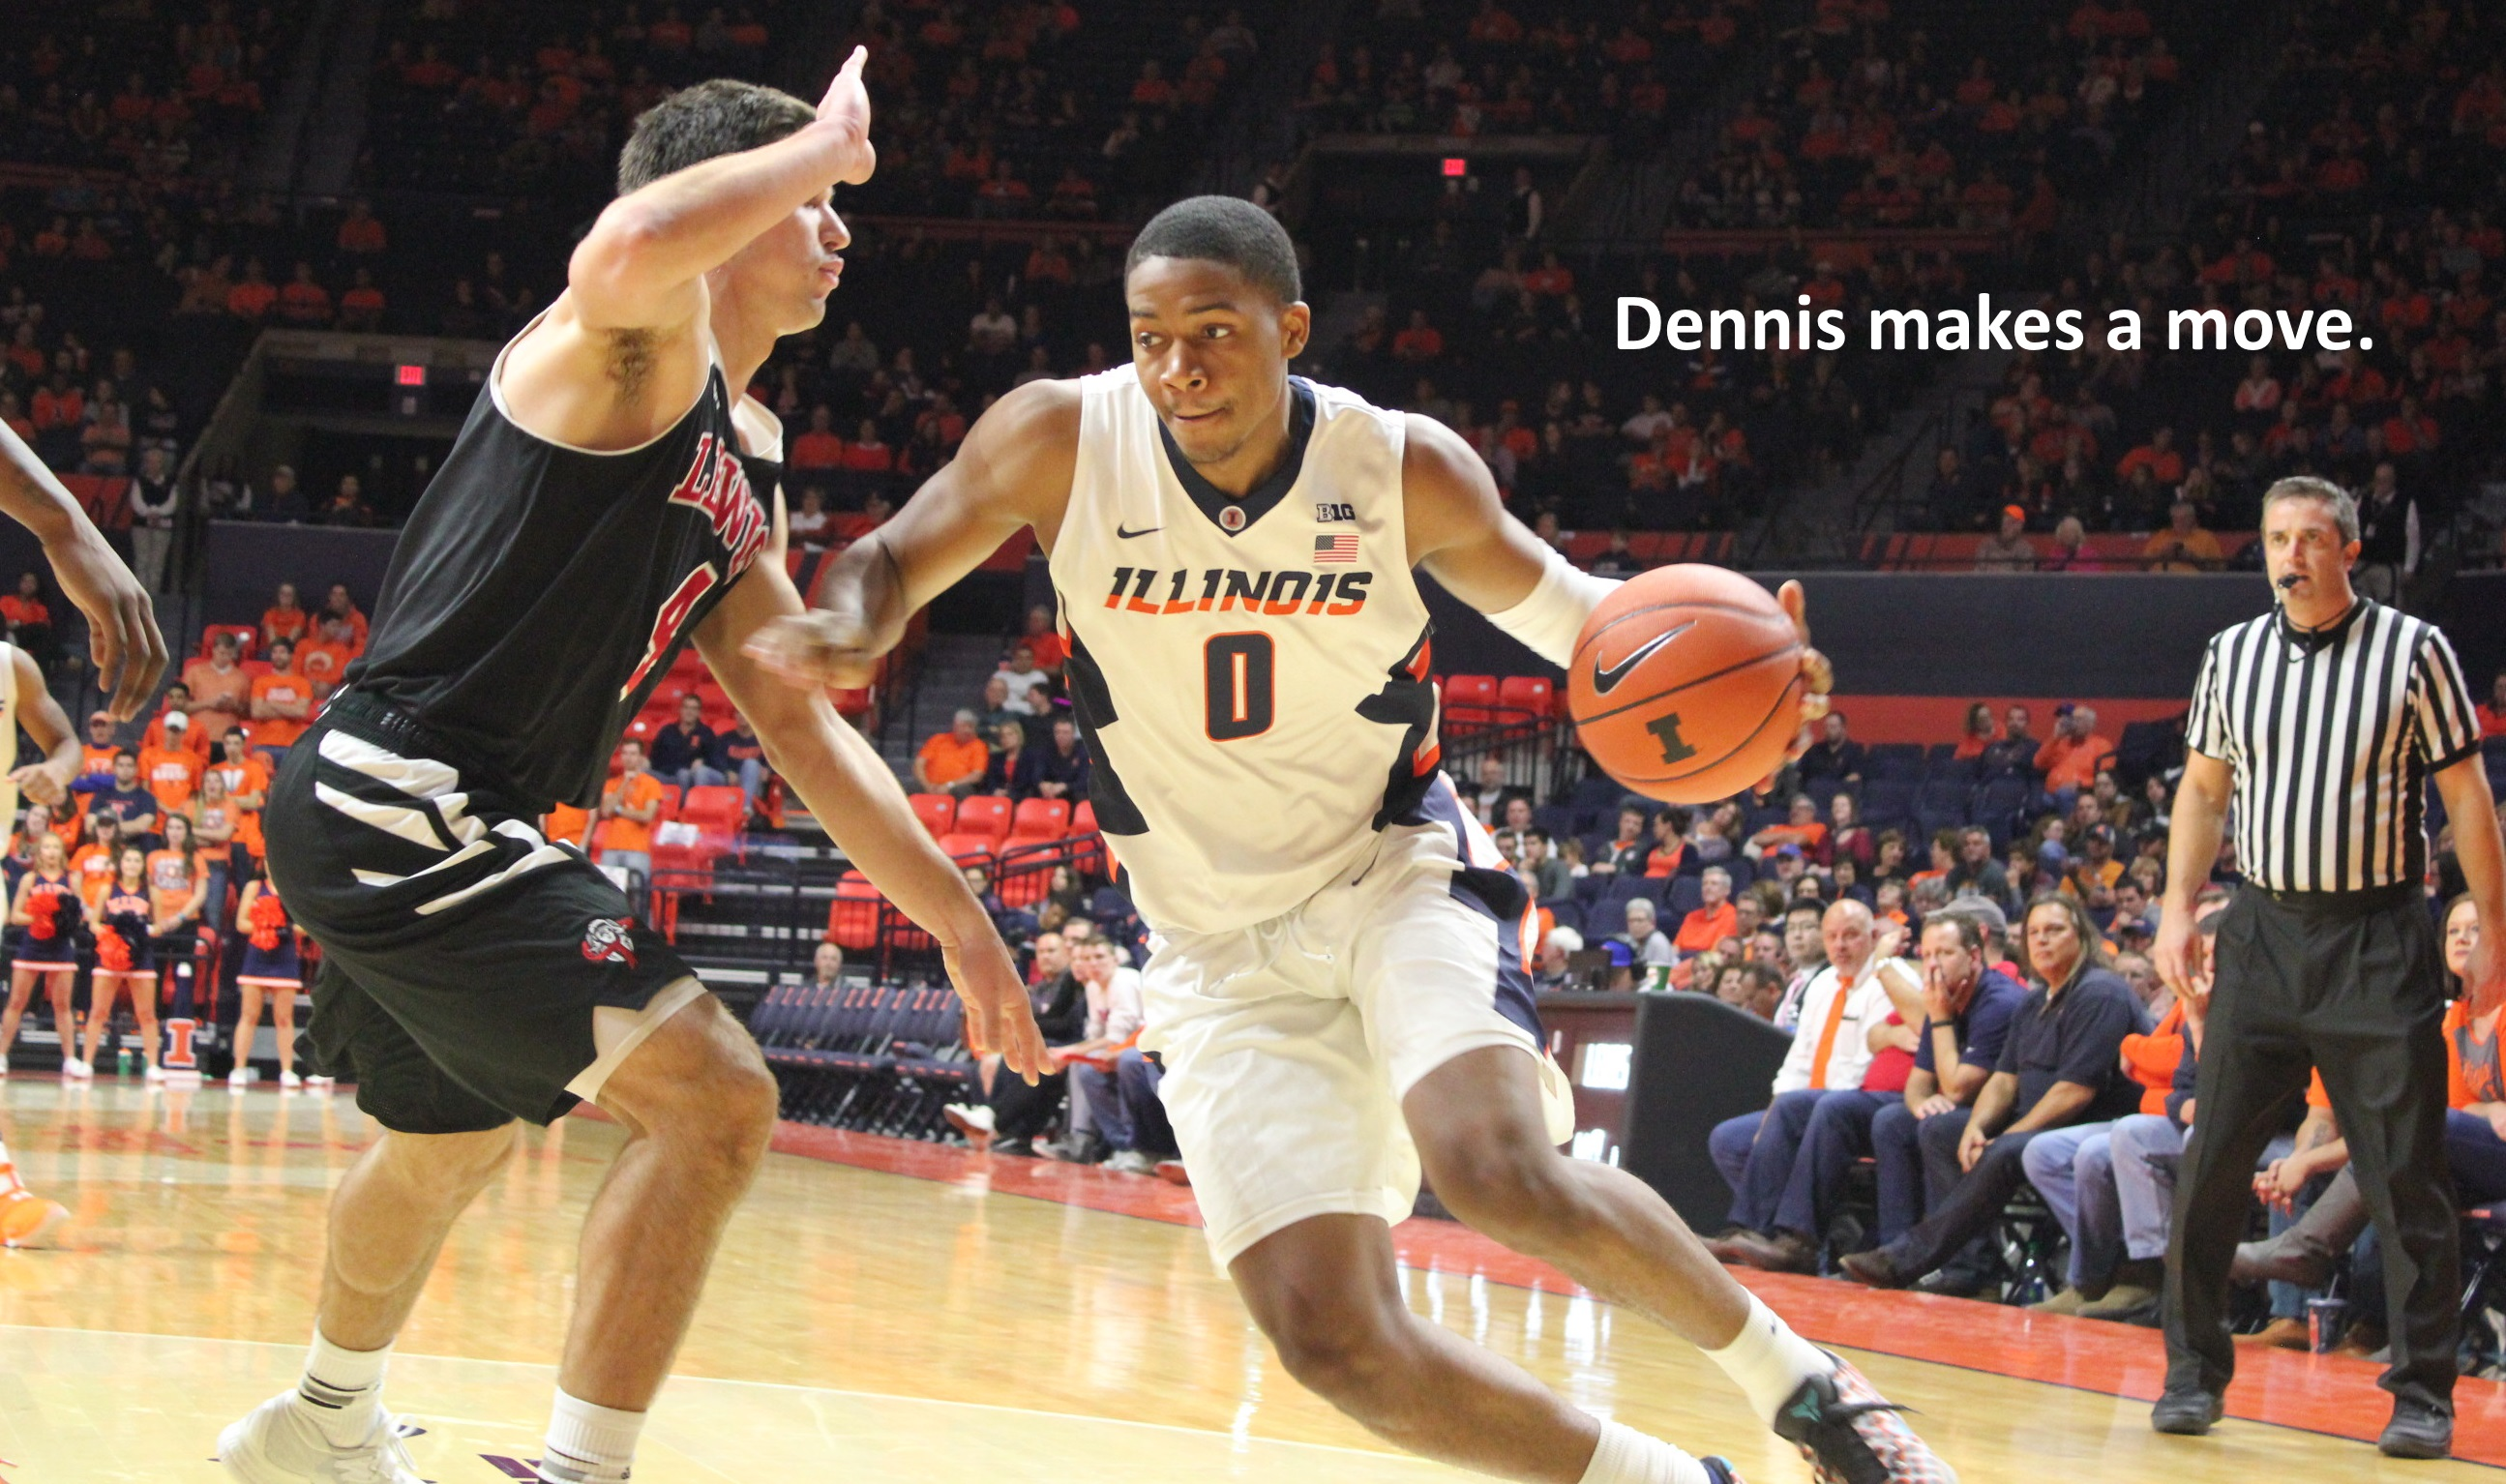 dennis-williams-illini-basketball